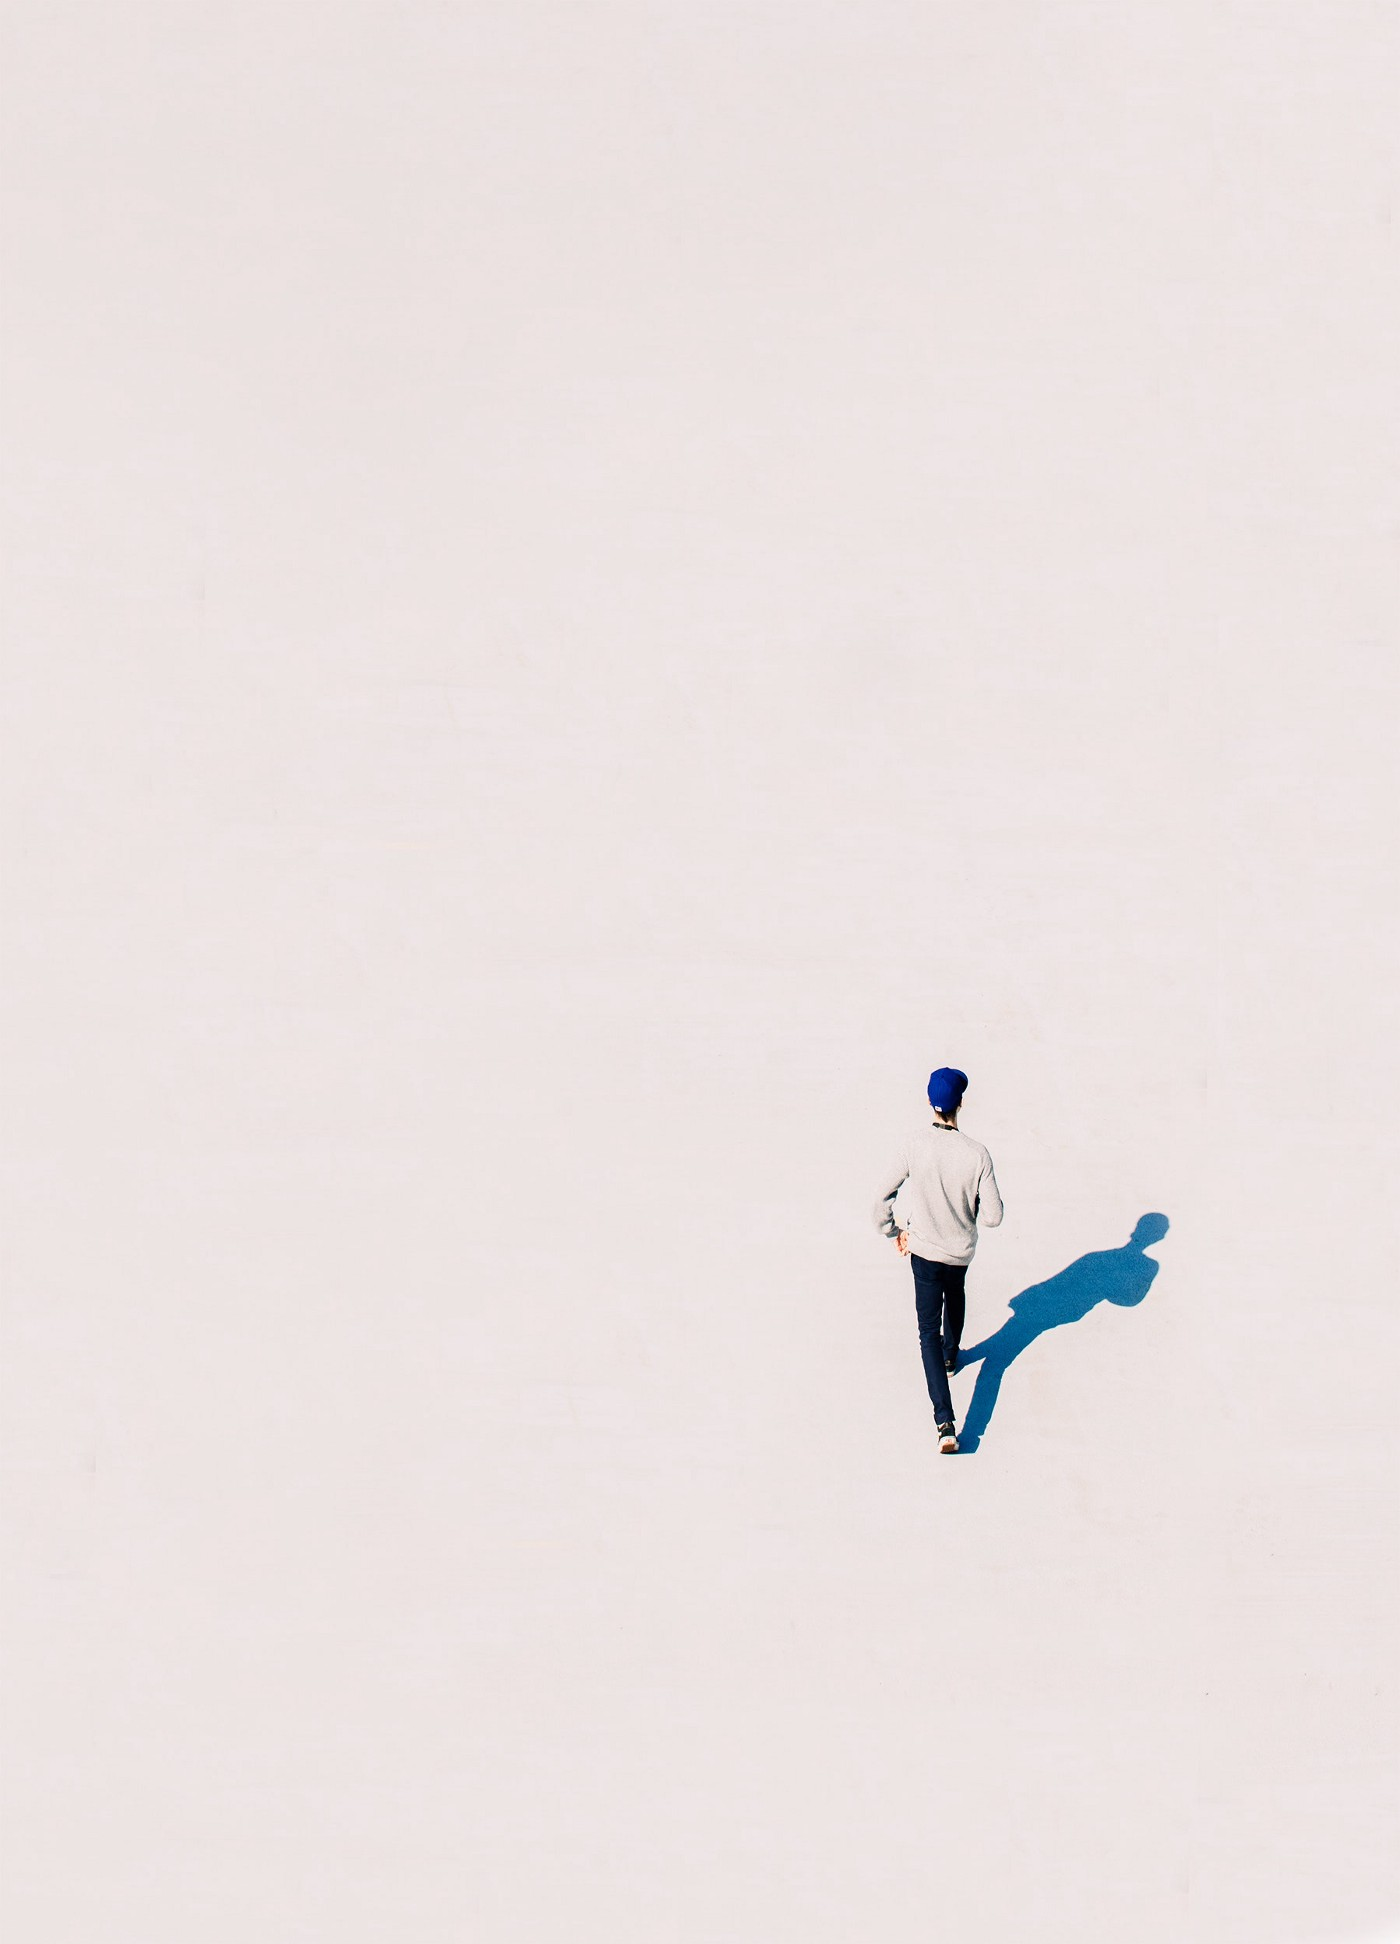 the viewpoint is from above and we can see a man walking in plain white background, his shadow is blue